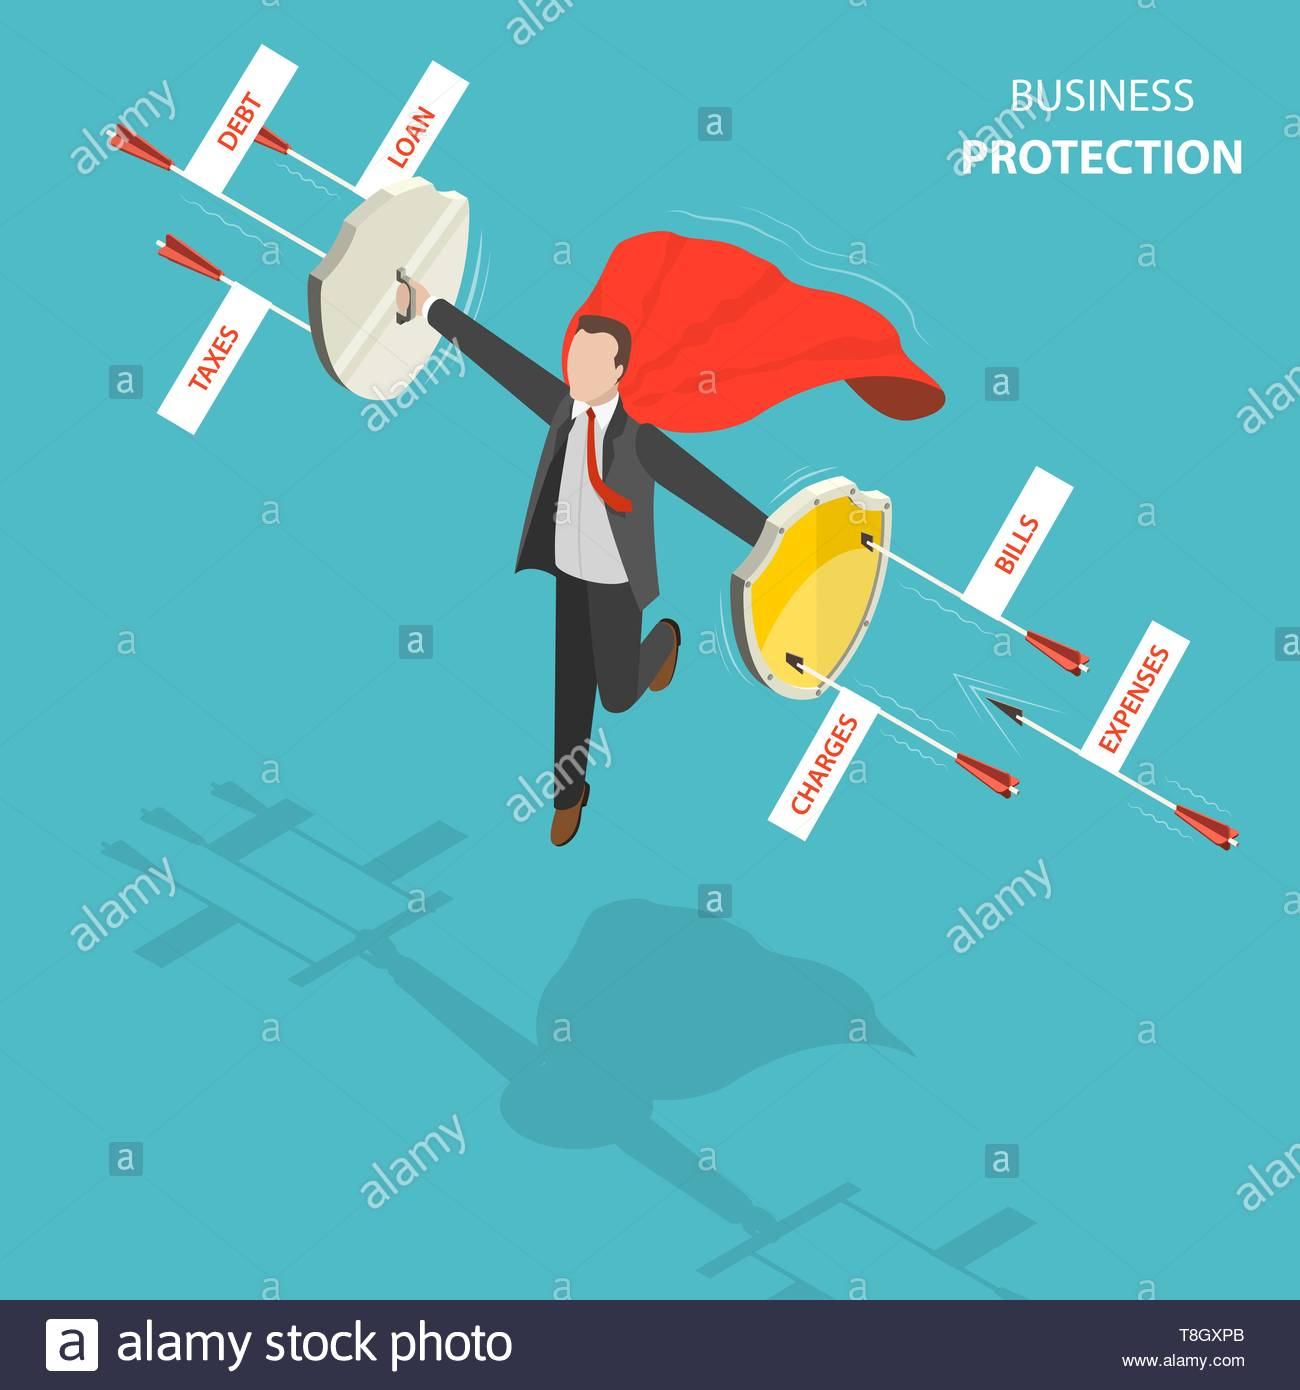 Business protection flat, isometric low poly vector concept. Man with a red cloak is hovering over the ground like a superhero with shields in his han - Stock Vector